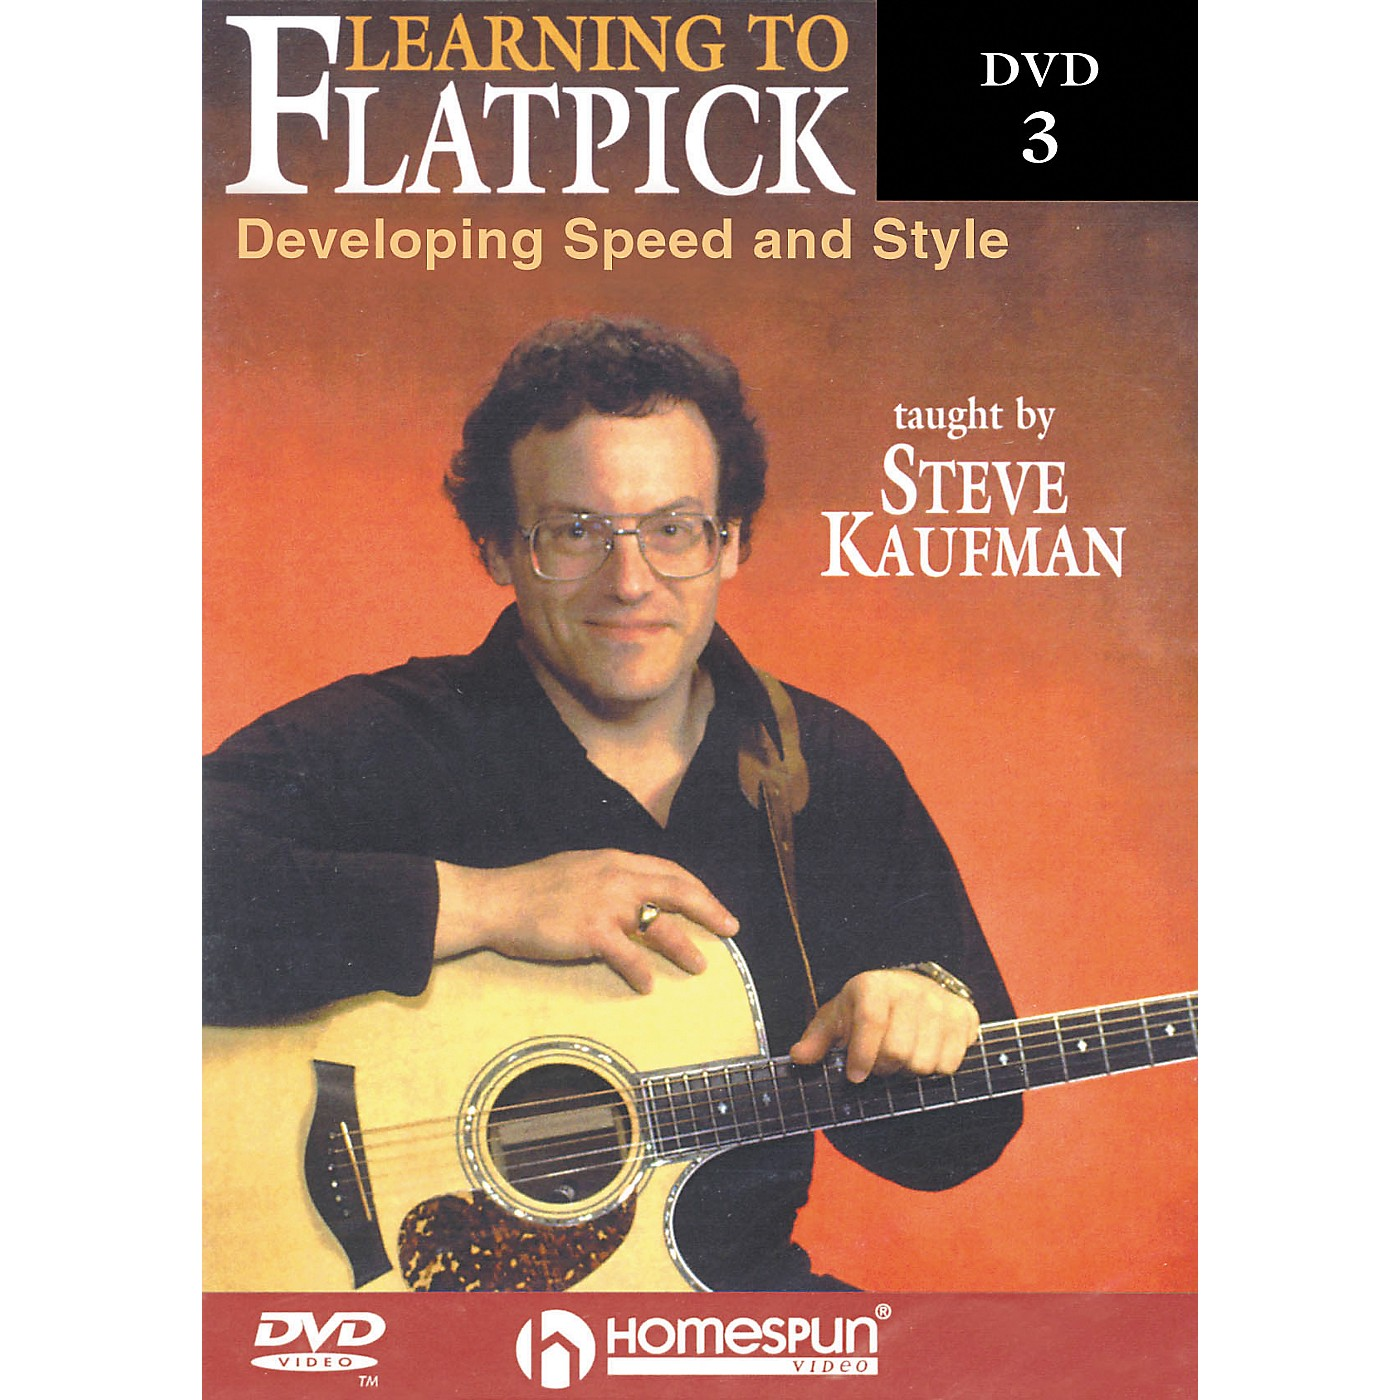 Homespun Learning to Flatpick DVD 3 - Developing Speed and Style (DVD) thumbnail